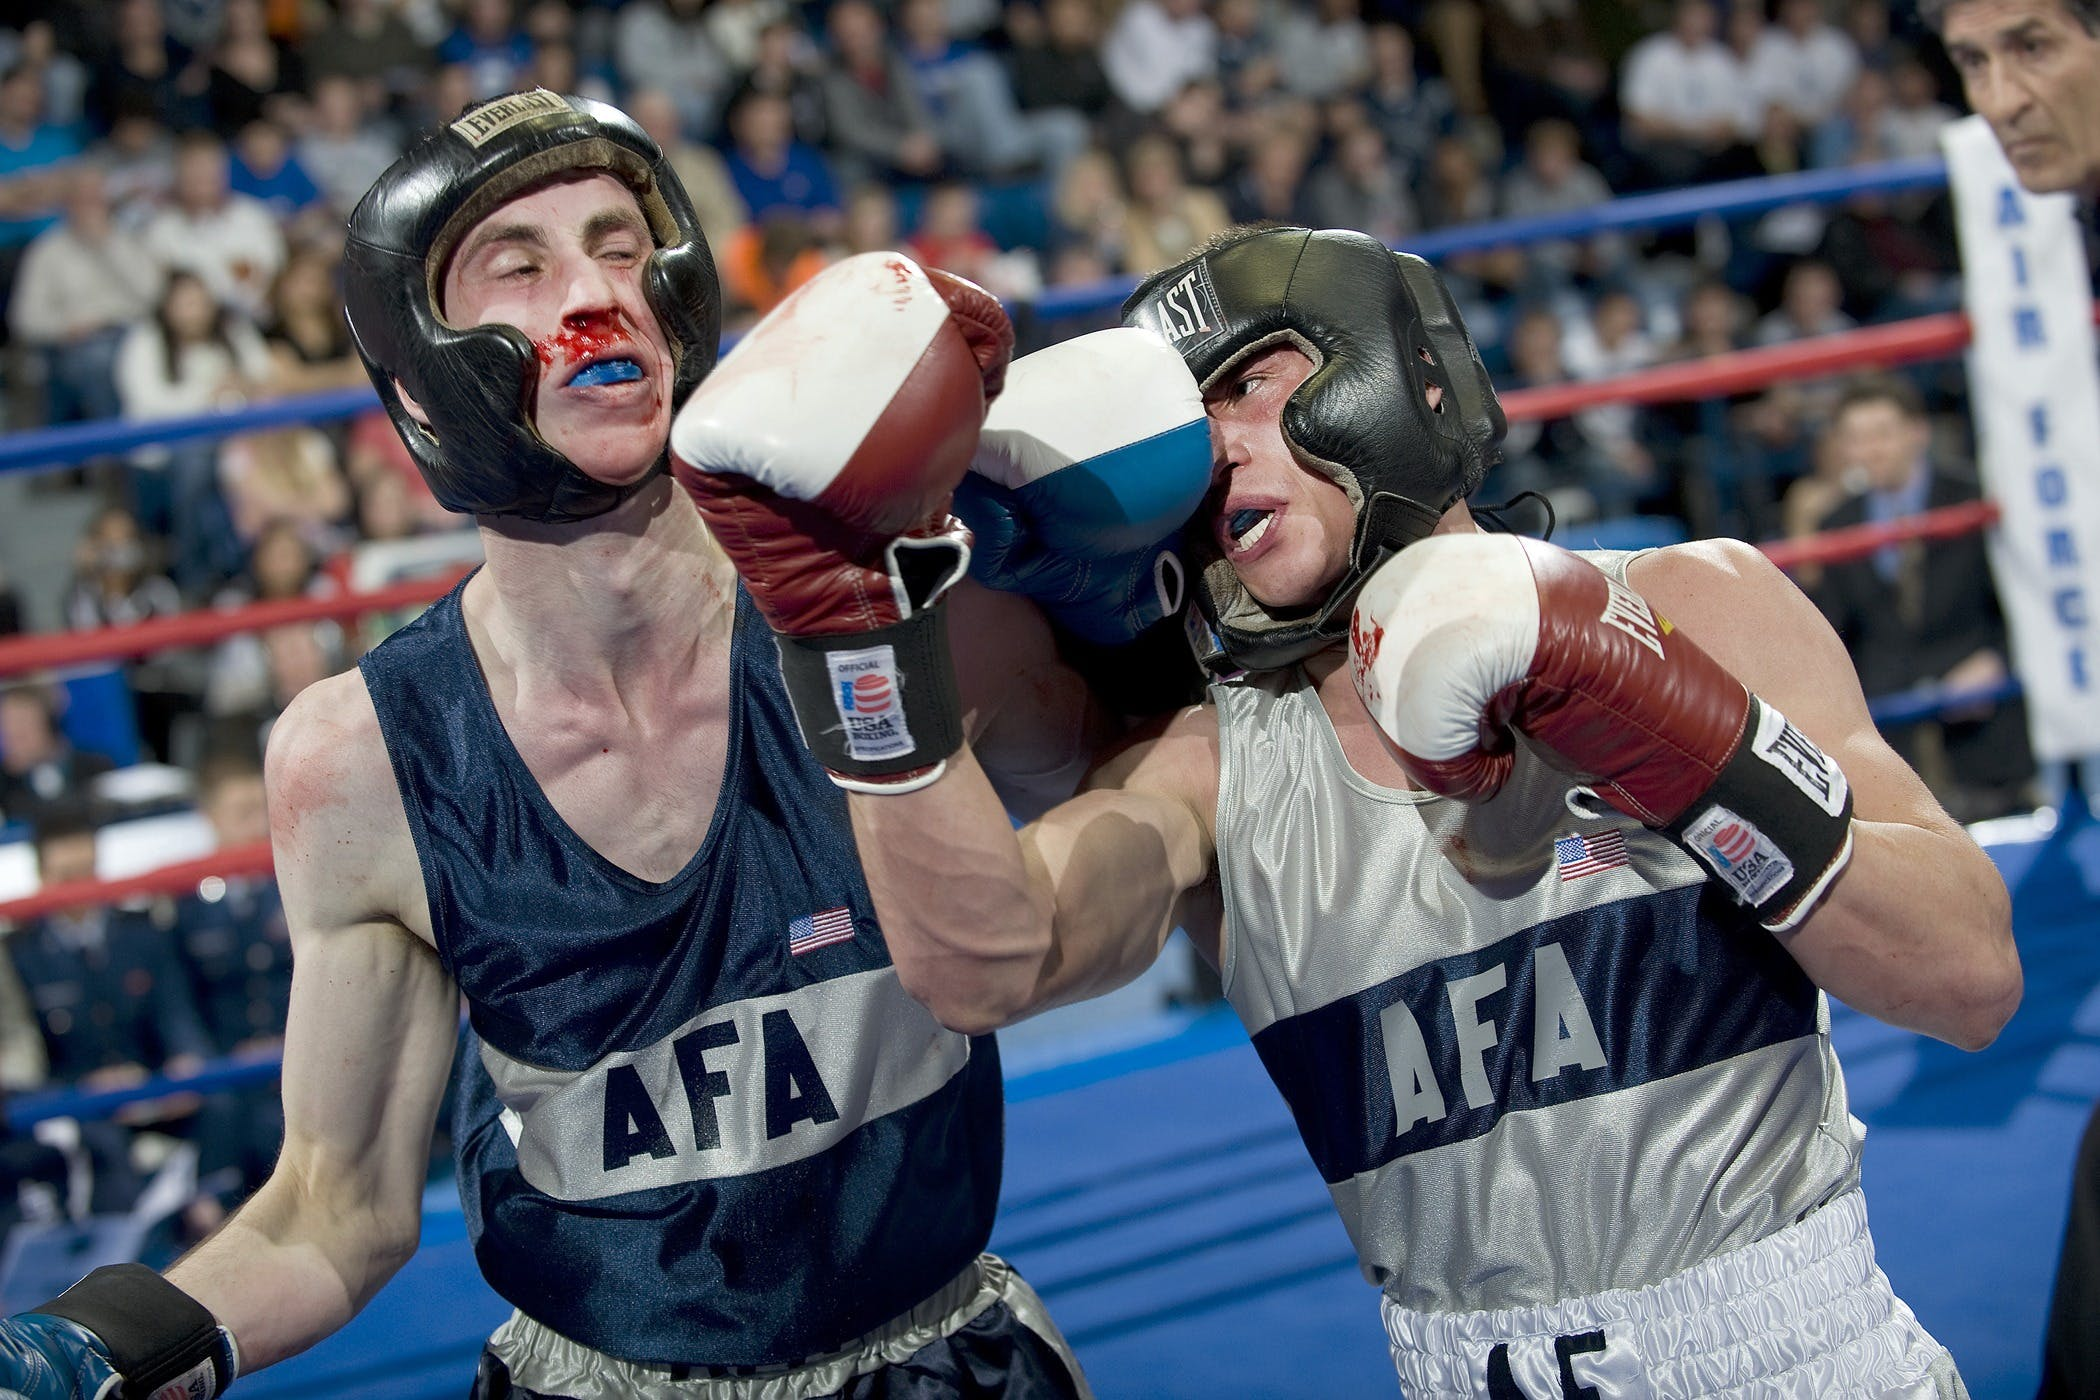 2 Men Boxing on Ring